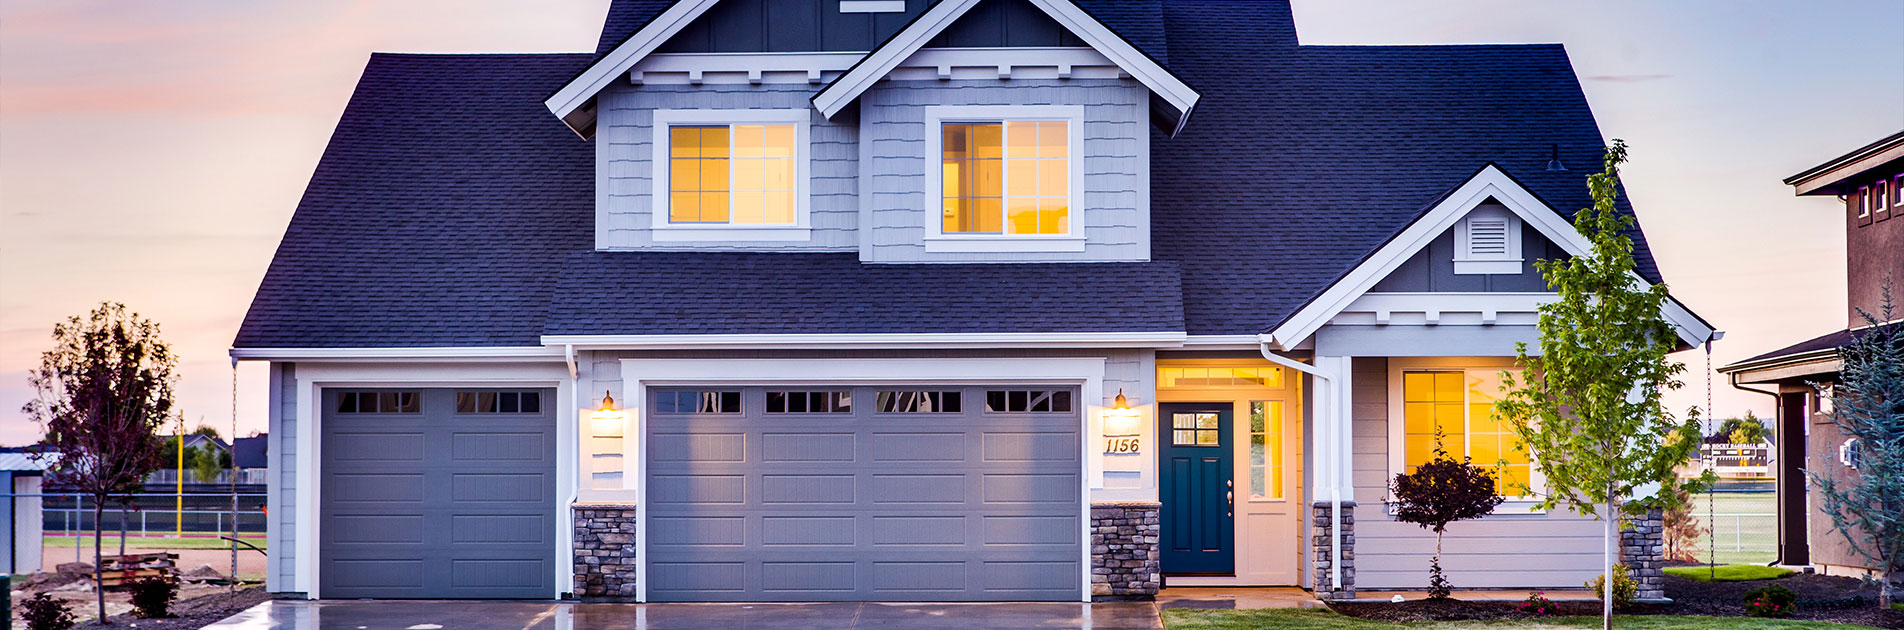 Global Garage Door Service Glendale, AZ 877-458-1406